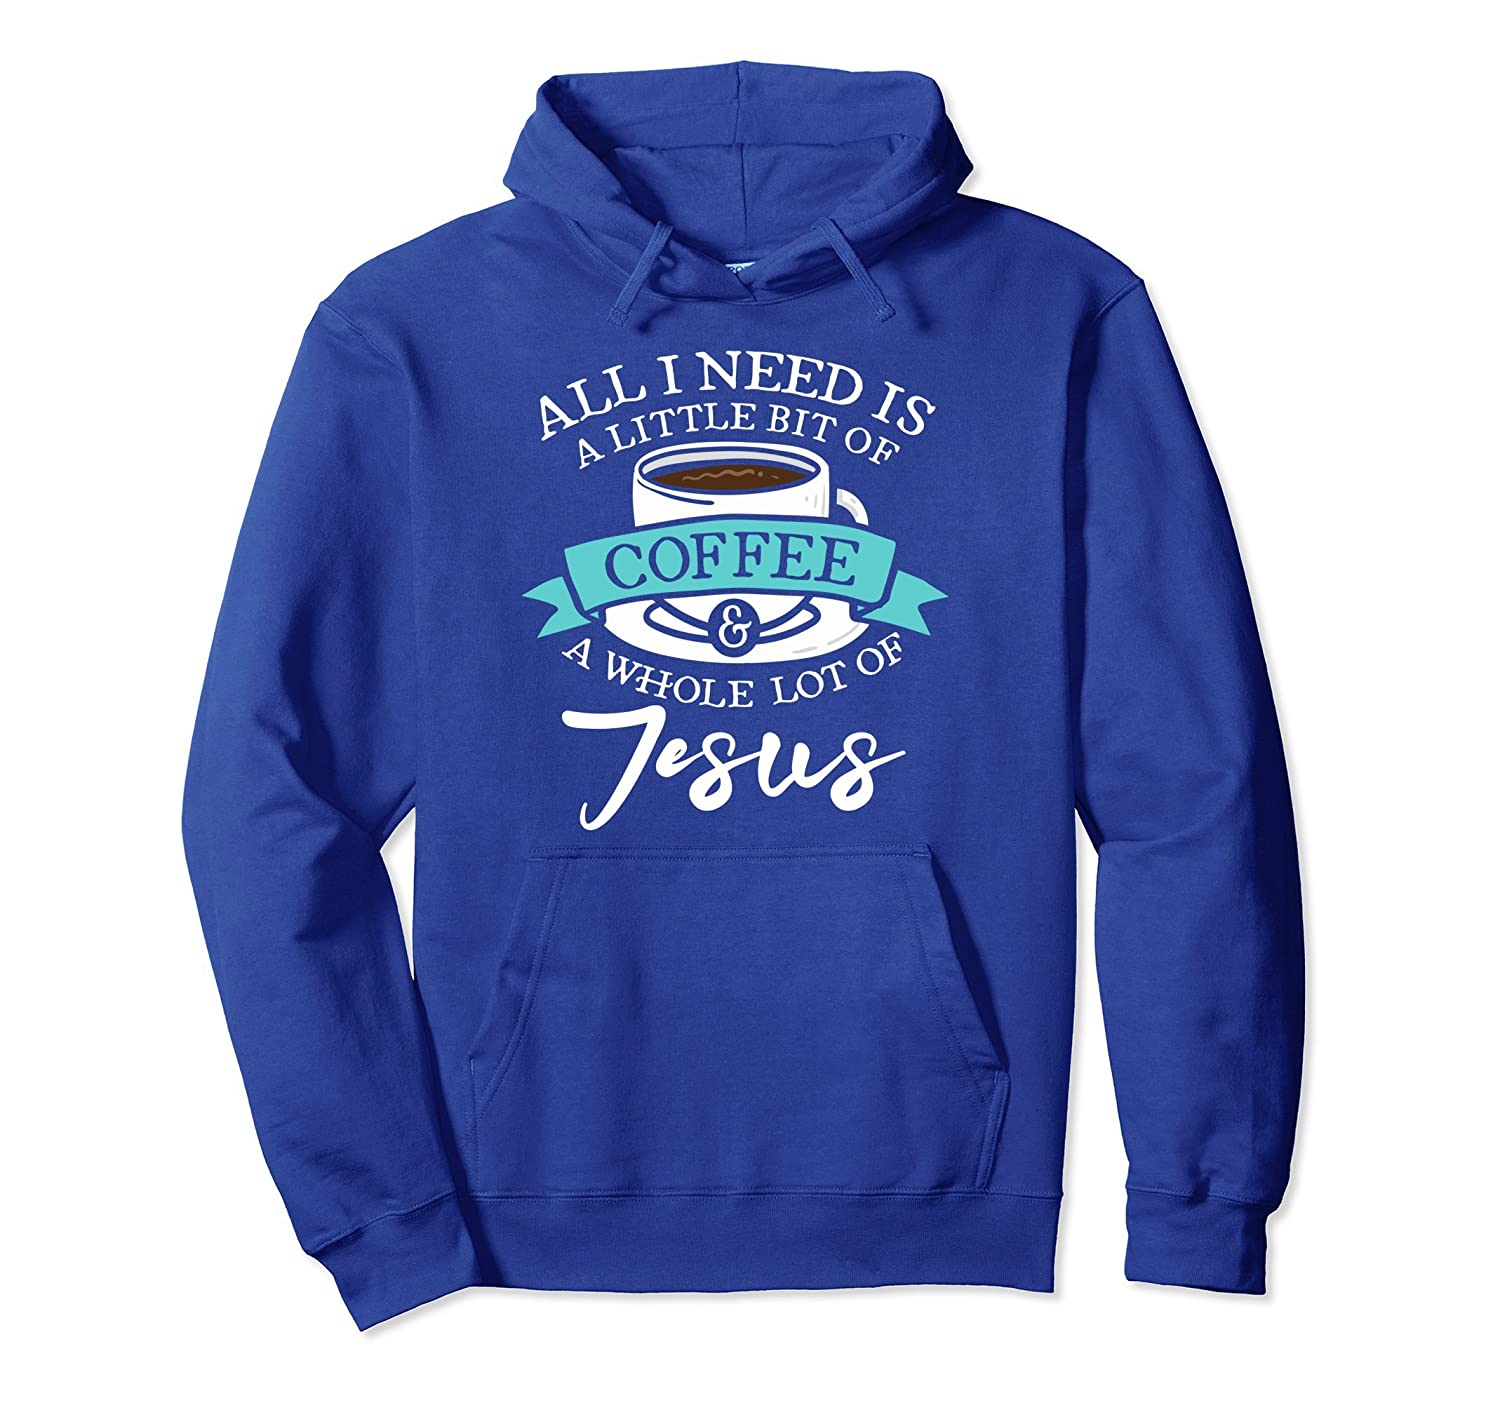 All I Need is A Little Bit Of Coffee and Jesus Hoodie-mt